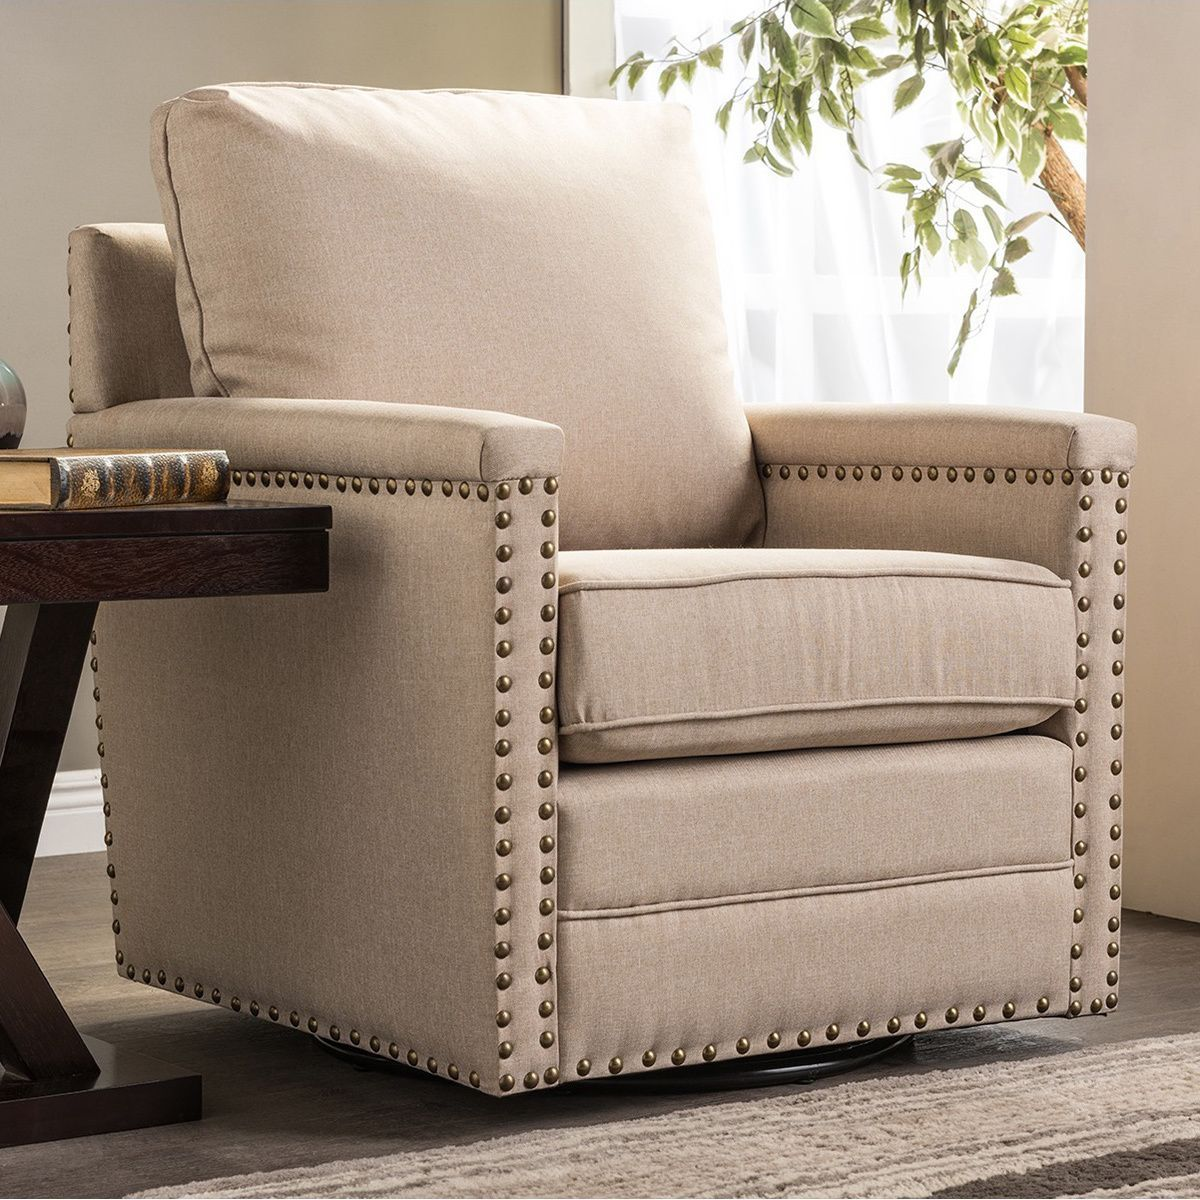 Madrid Taupe Beige Ultra Modern Living Room Furniture 3: The Ashley Beige Fabric Upholstered Armchair Is The